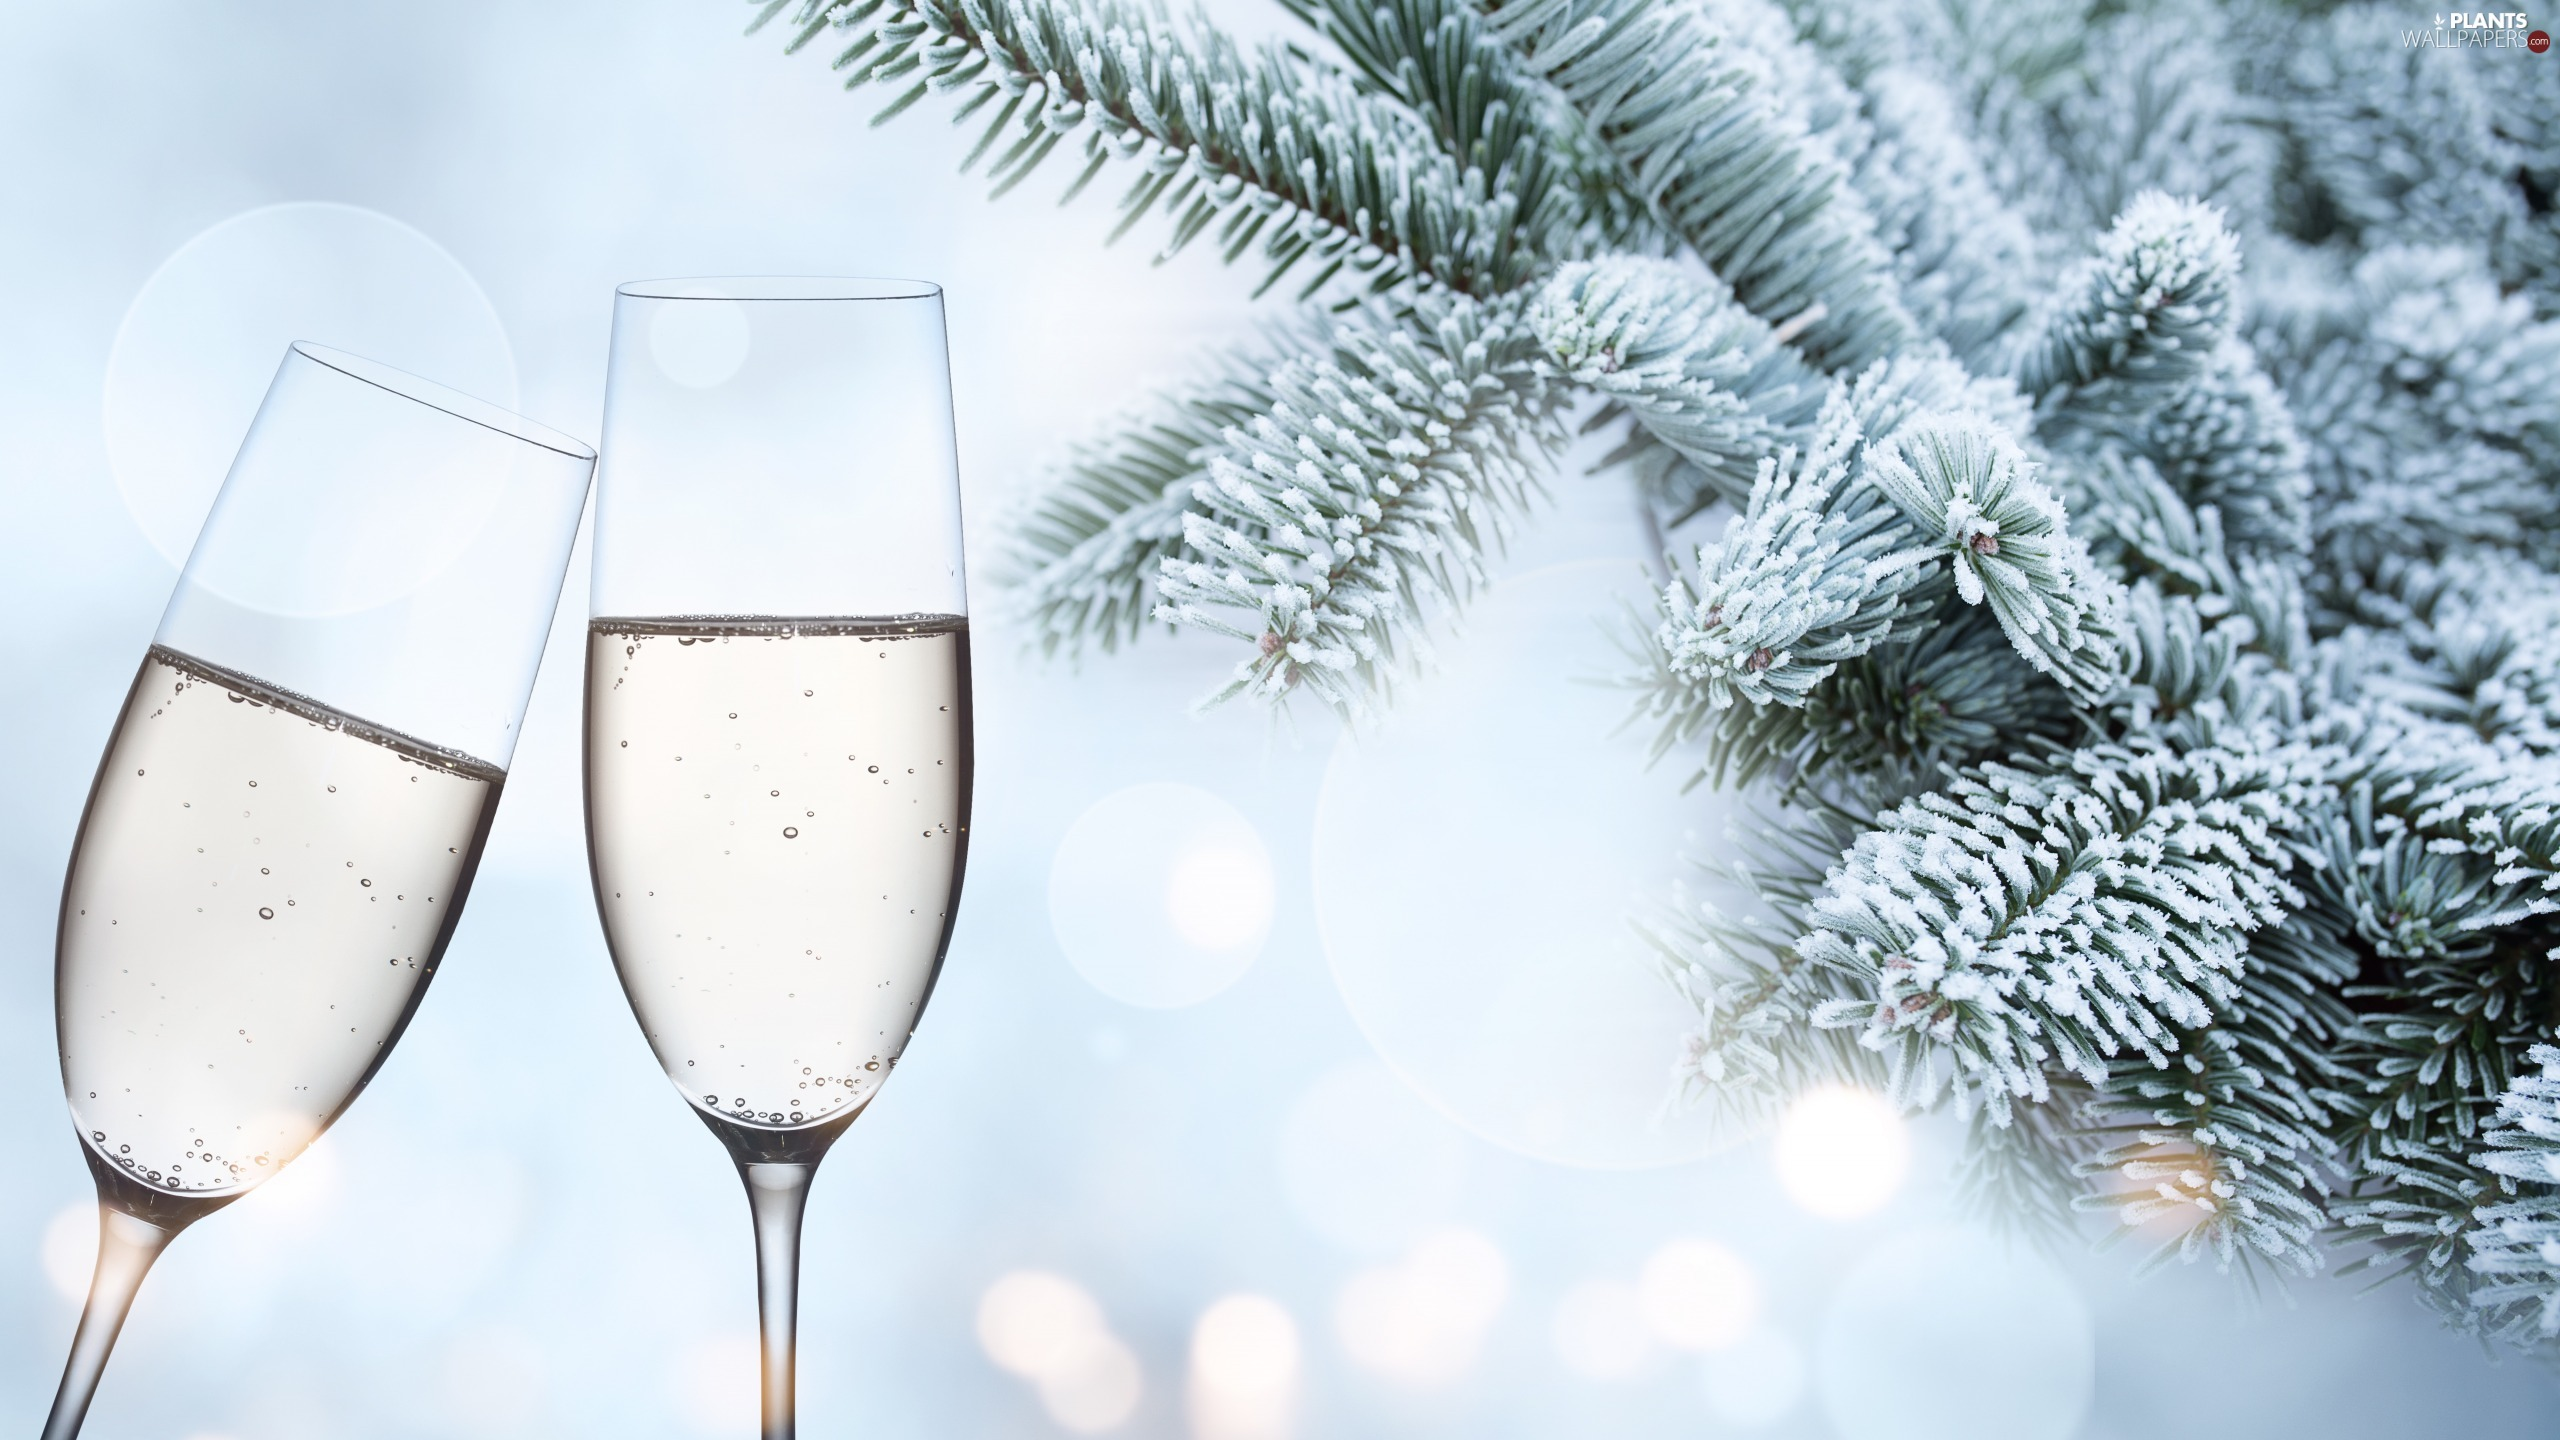 Twigs, glasses, snow, Champagne, Two cars, spruce, Bokeh